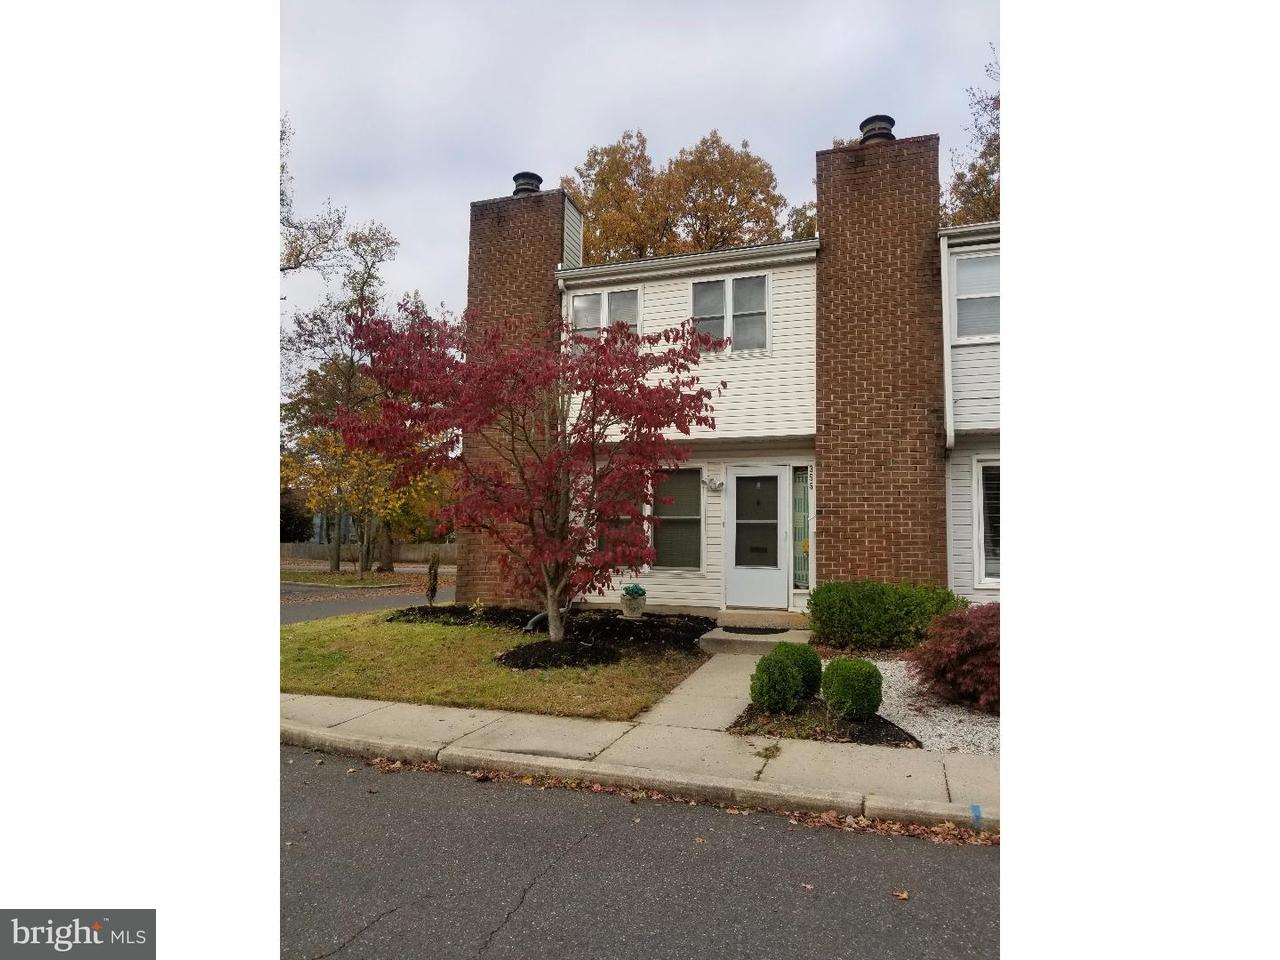 Townhouse for Rent at 355 BARTON RUN BLVD Marlton, New Jersey 08053 United States